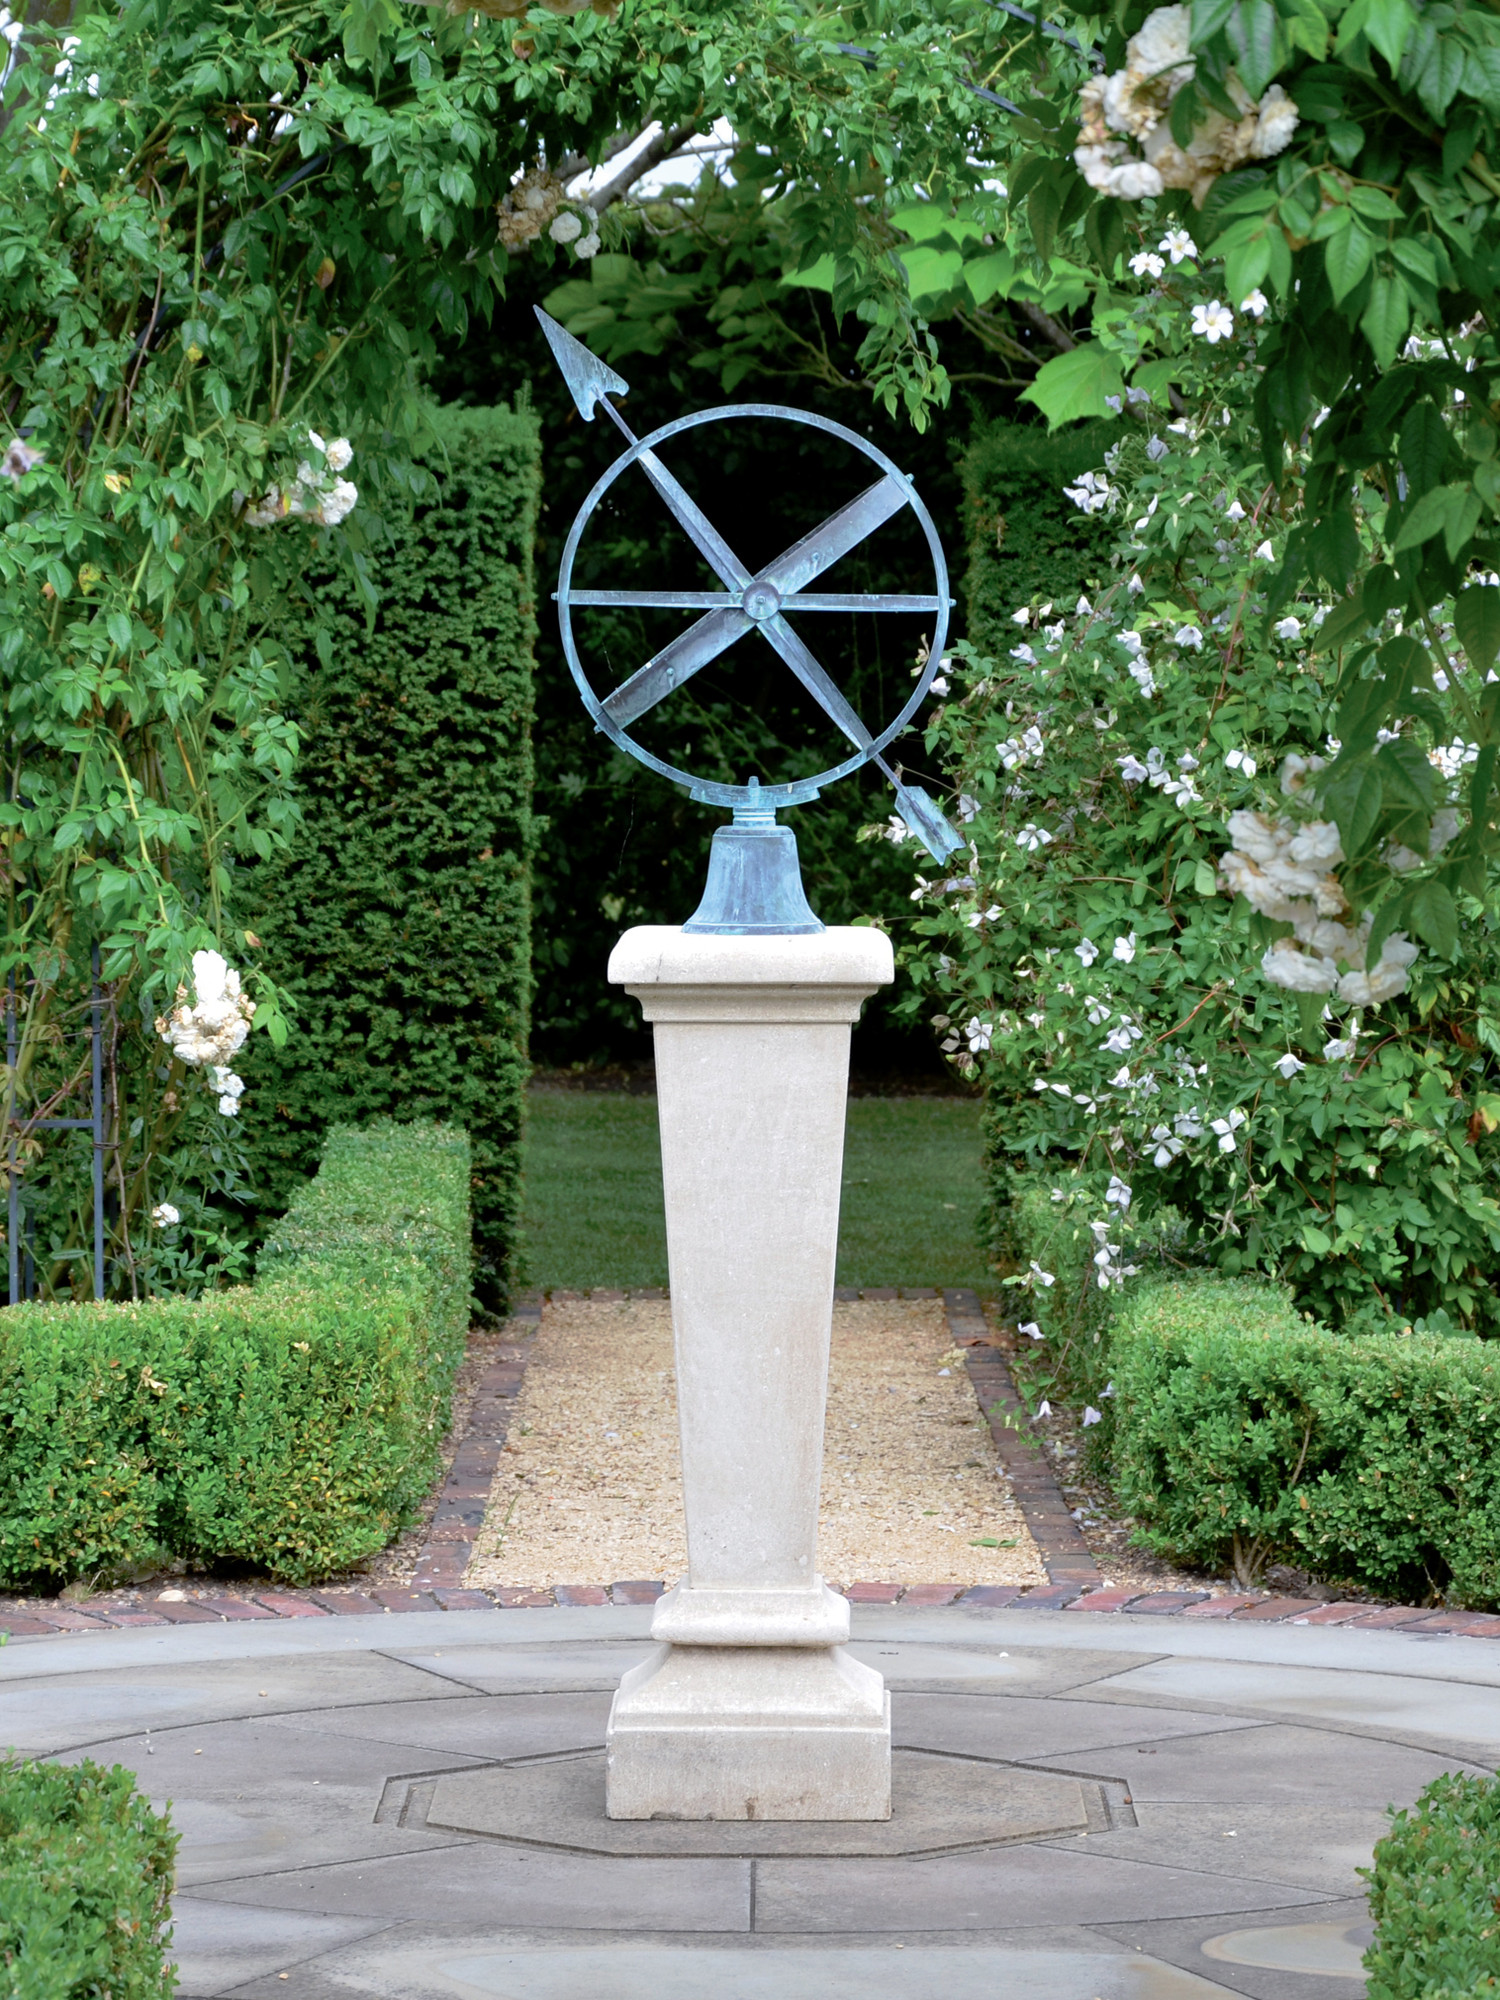 The Inverted Sundial Pedestal With